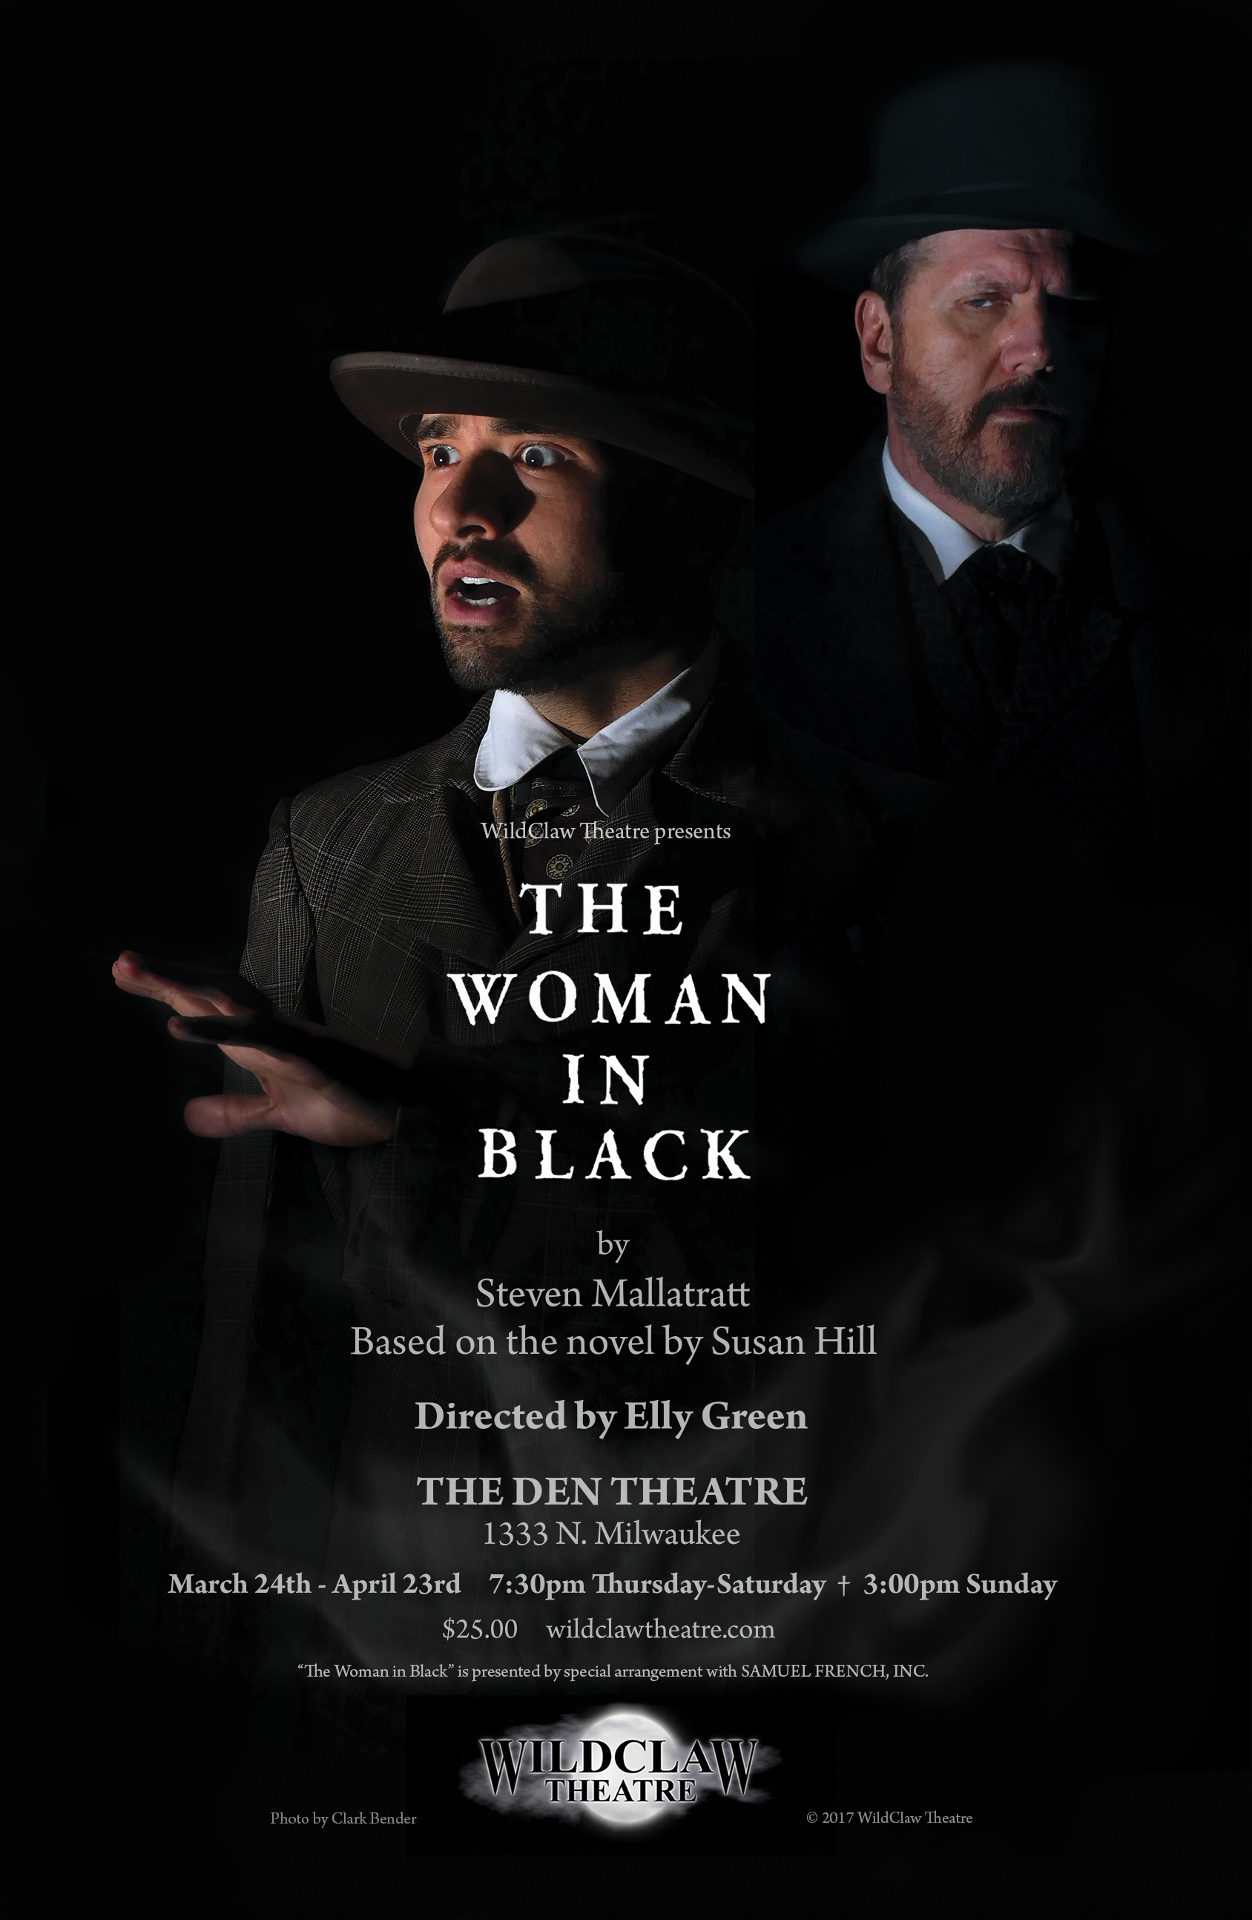 the woman in black (2017) | wildclaw theatre of chicago